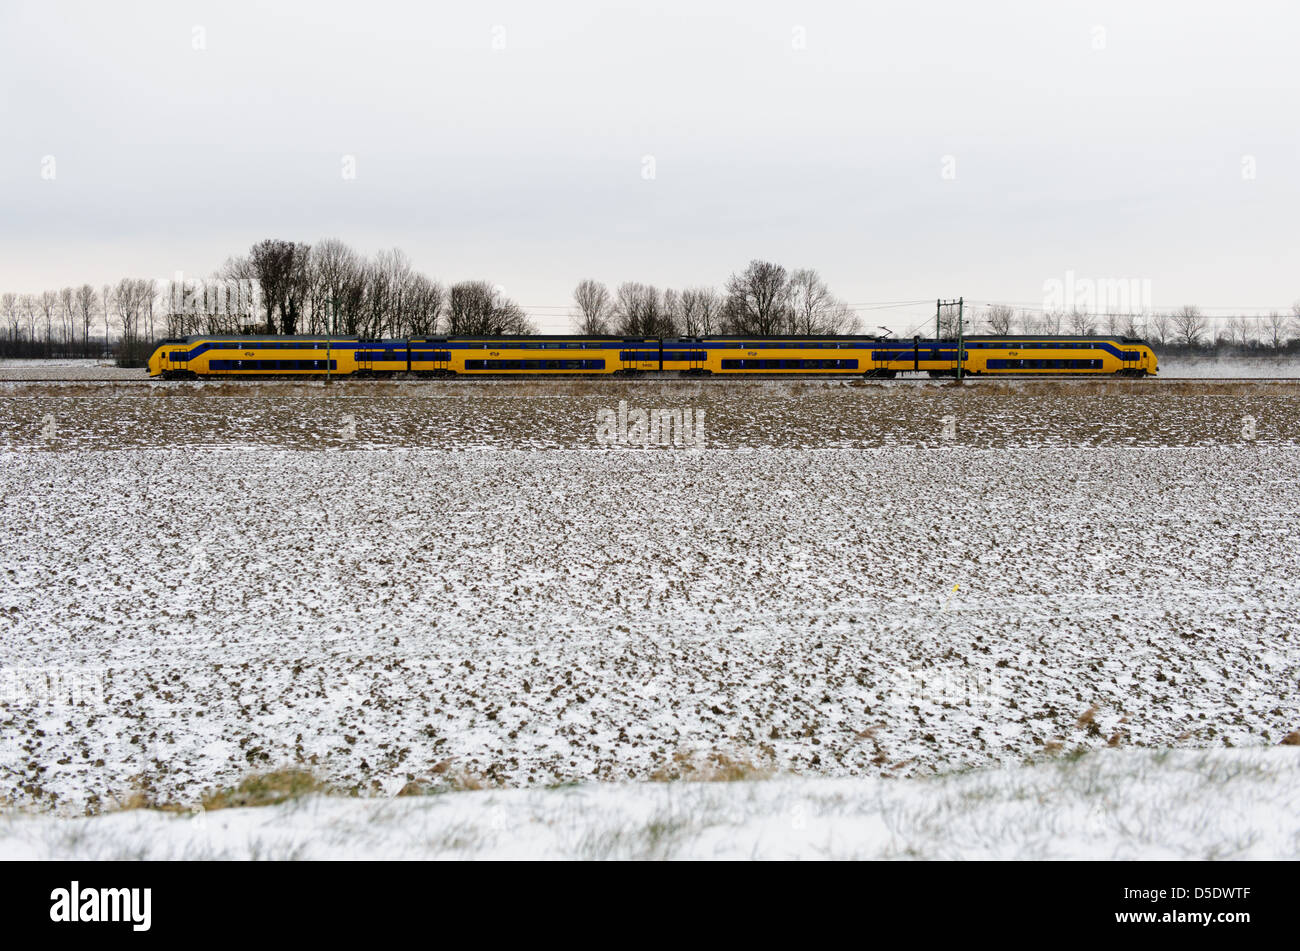 Passing yellow train of the Dutch Railways  in a snow covered landscape. Zeeland, Netherlands. - Stock Image